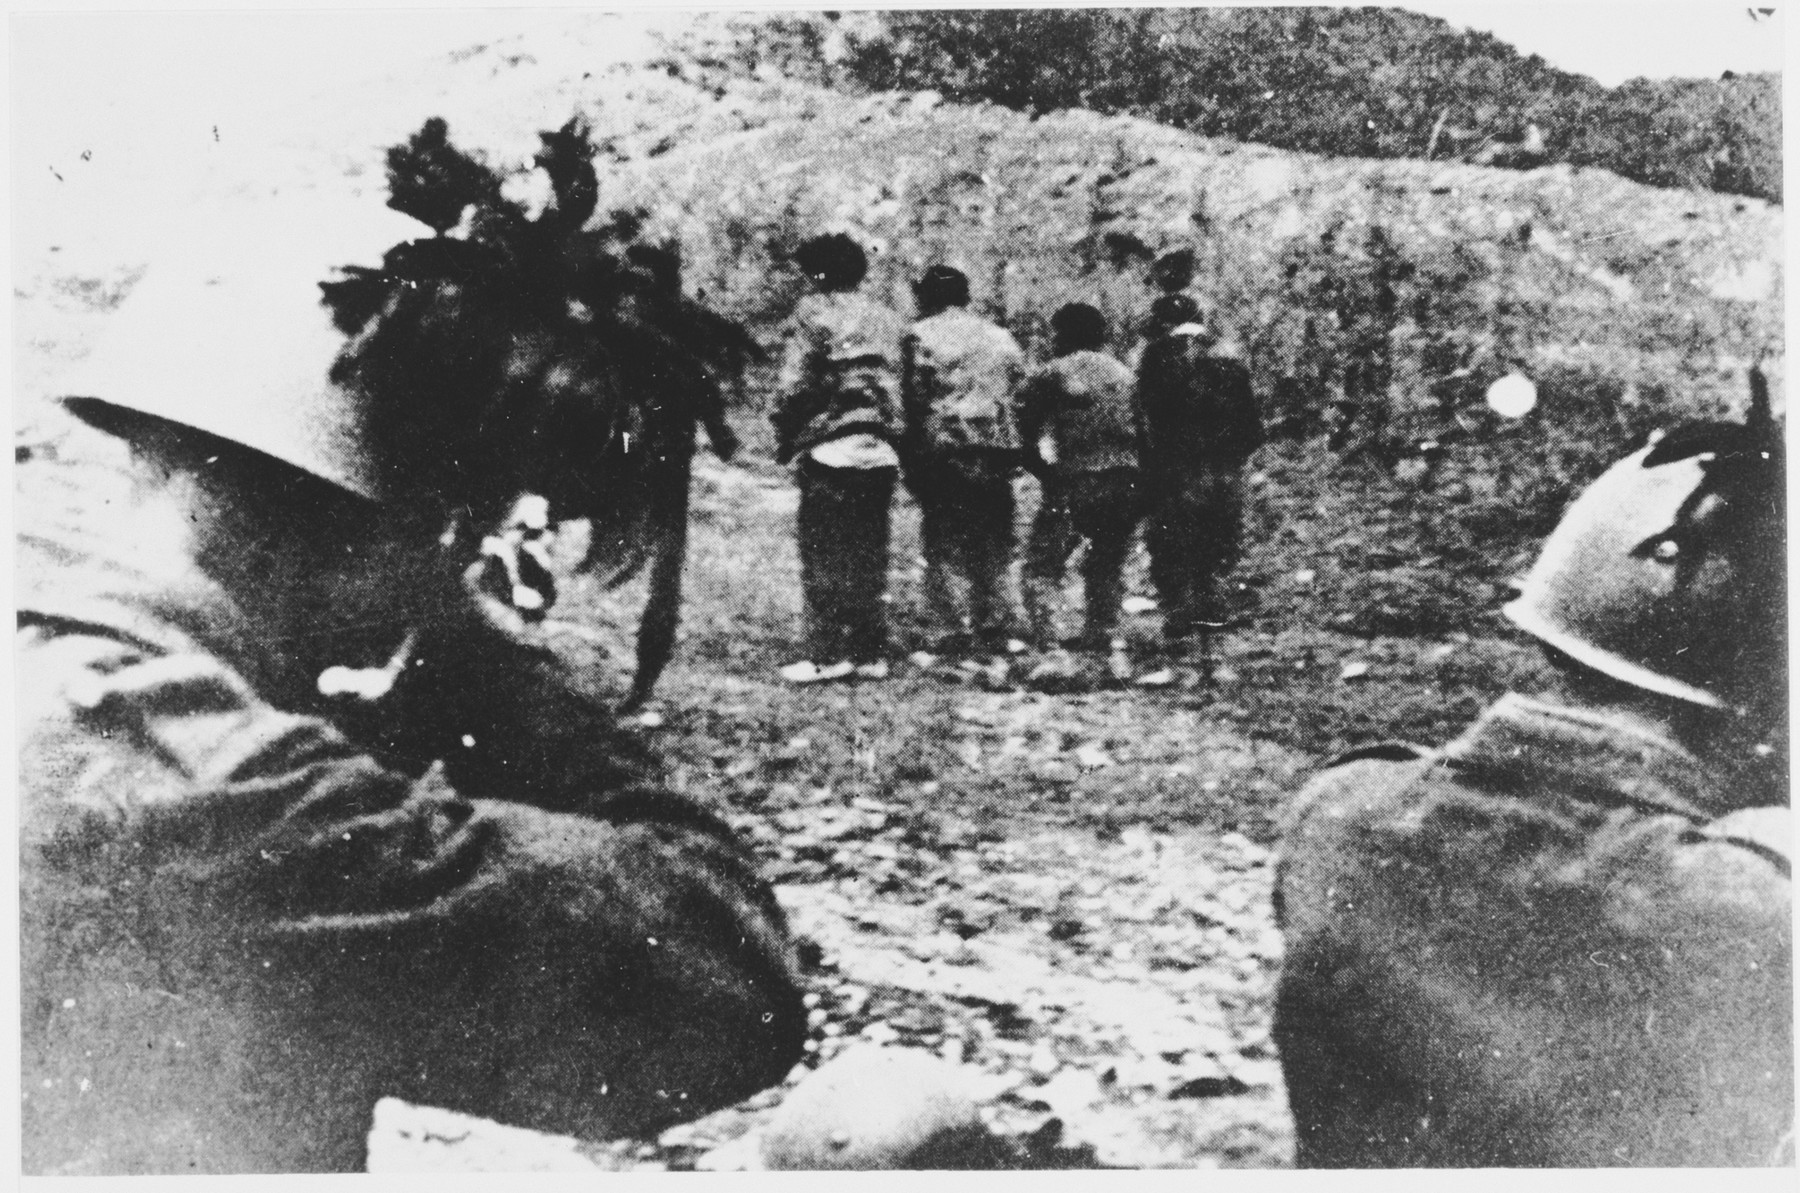 Italian soldiers take aim at a group of unidentified prisoners they are about to shoot.